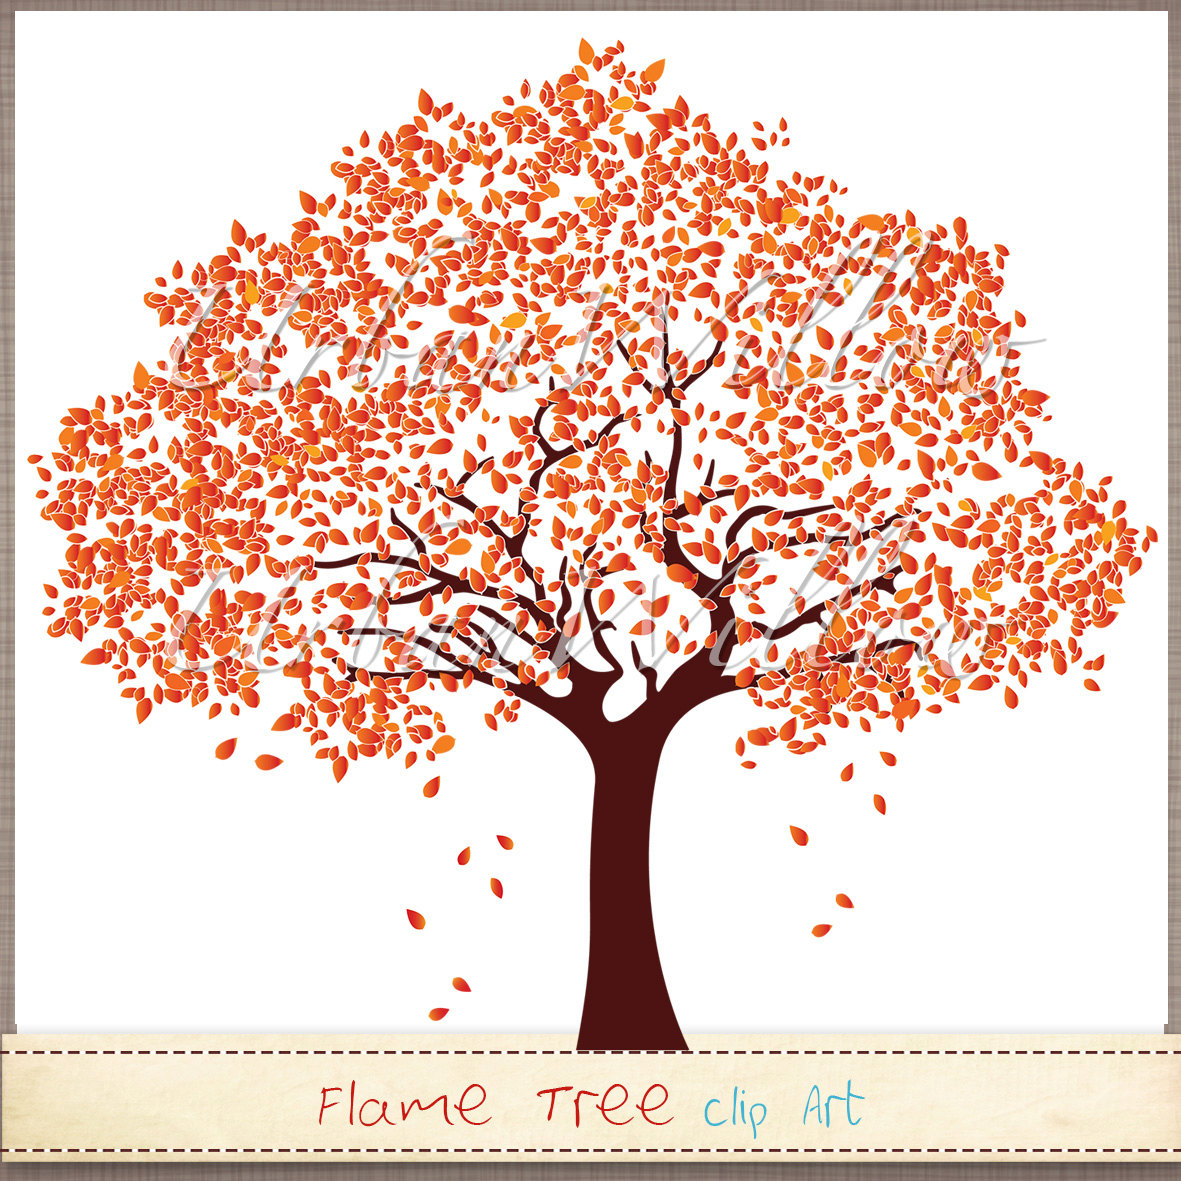 FLAME TREE Clip art image in 3 sizes. Png & Jpeg by UrbanWillow.